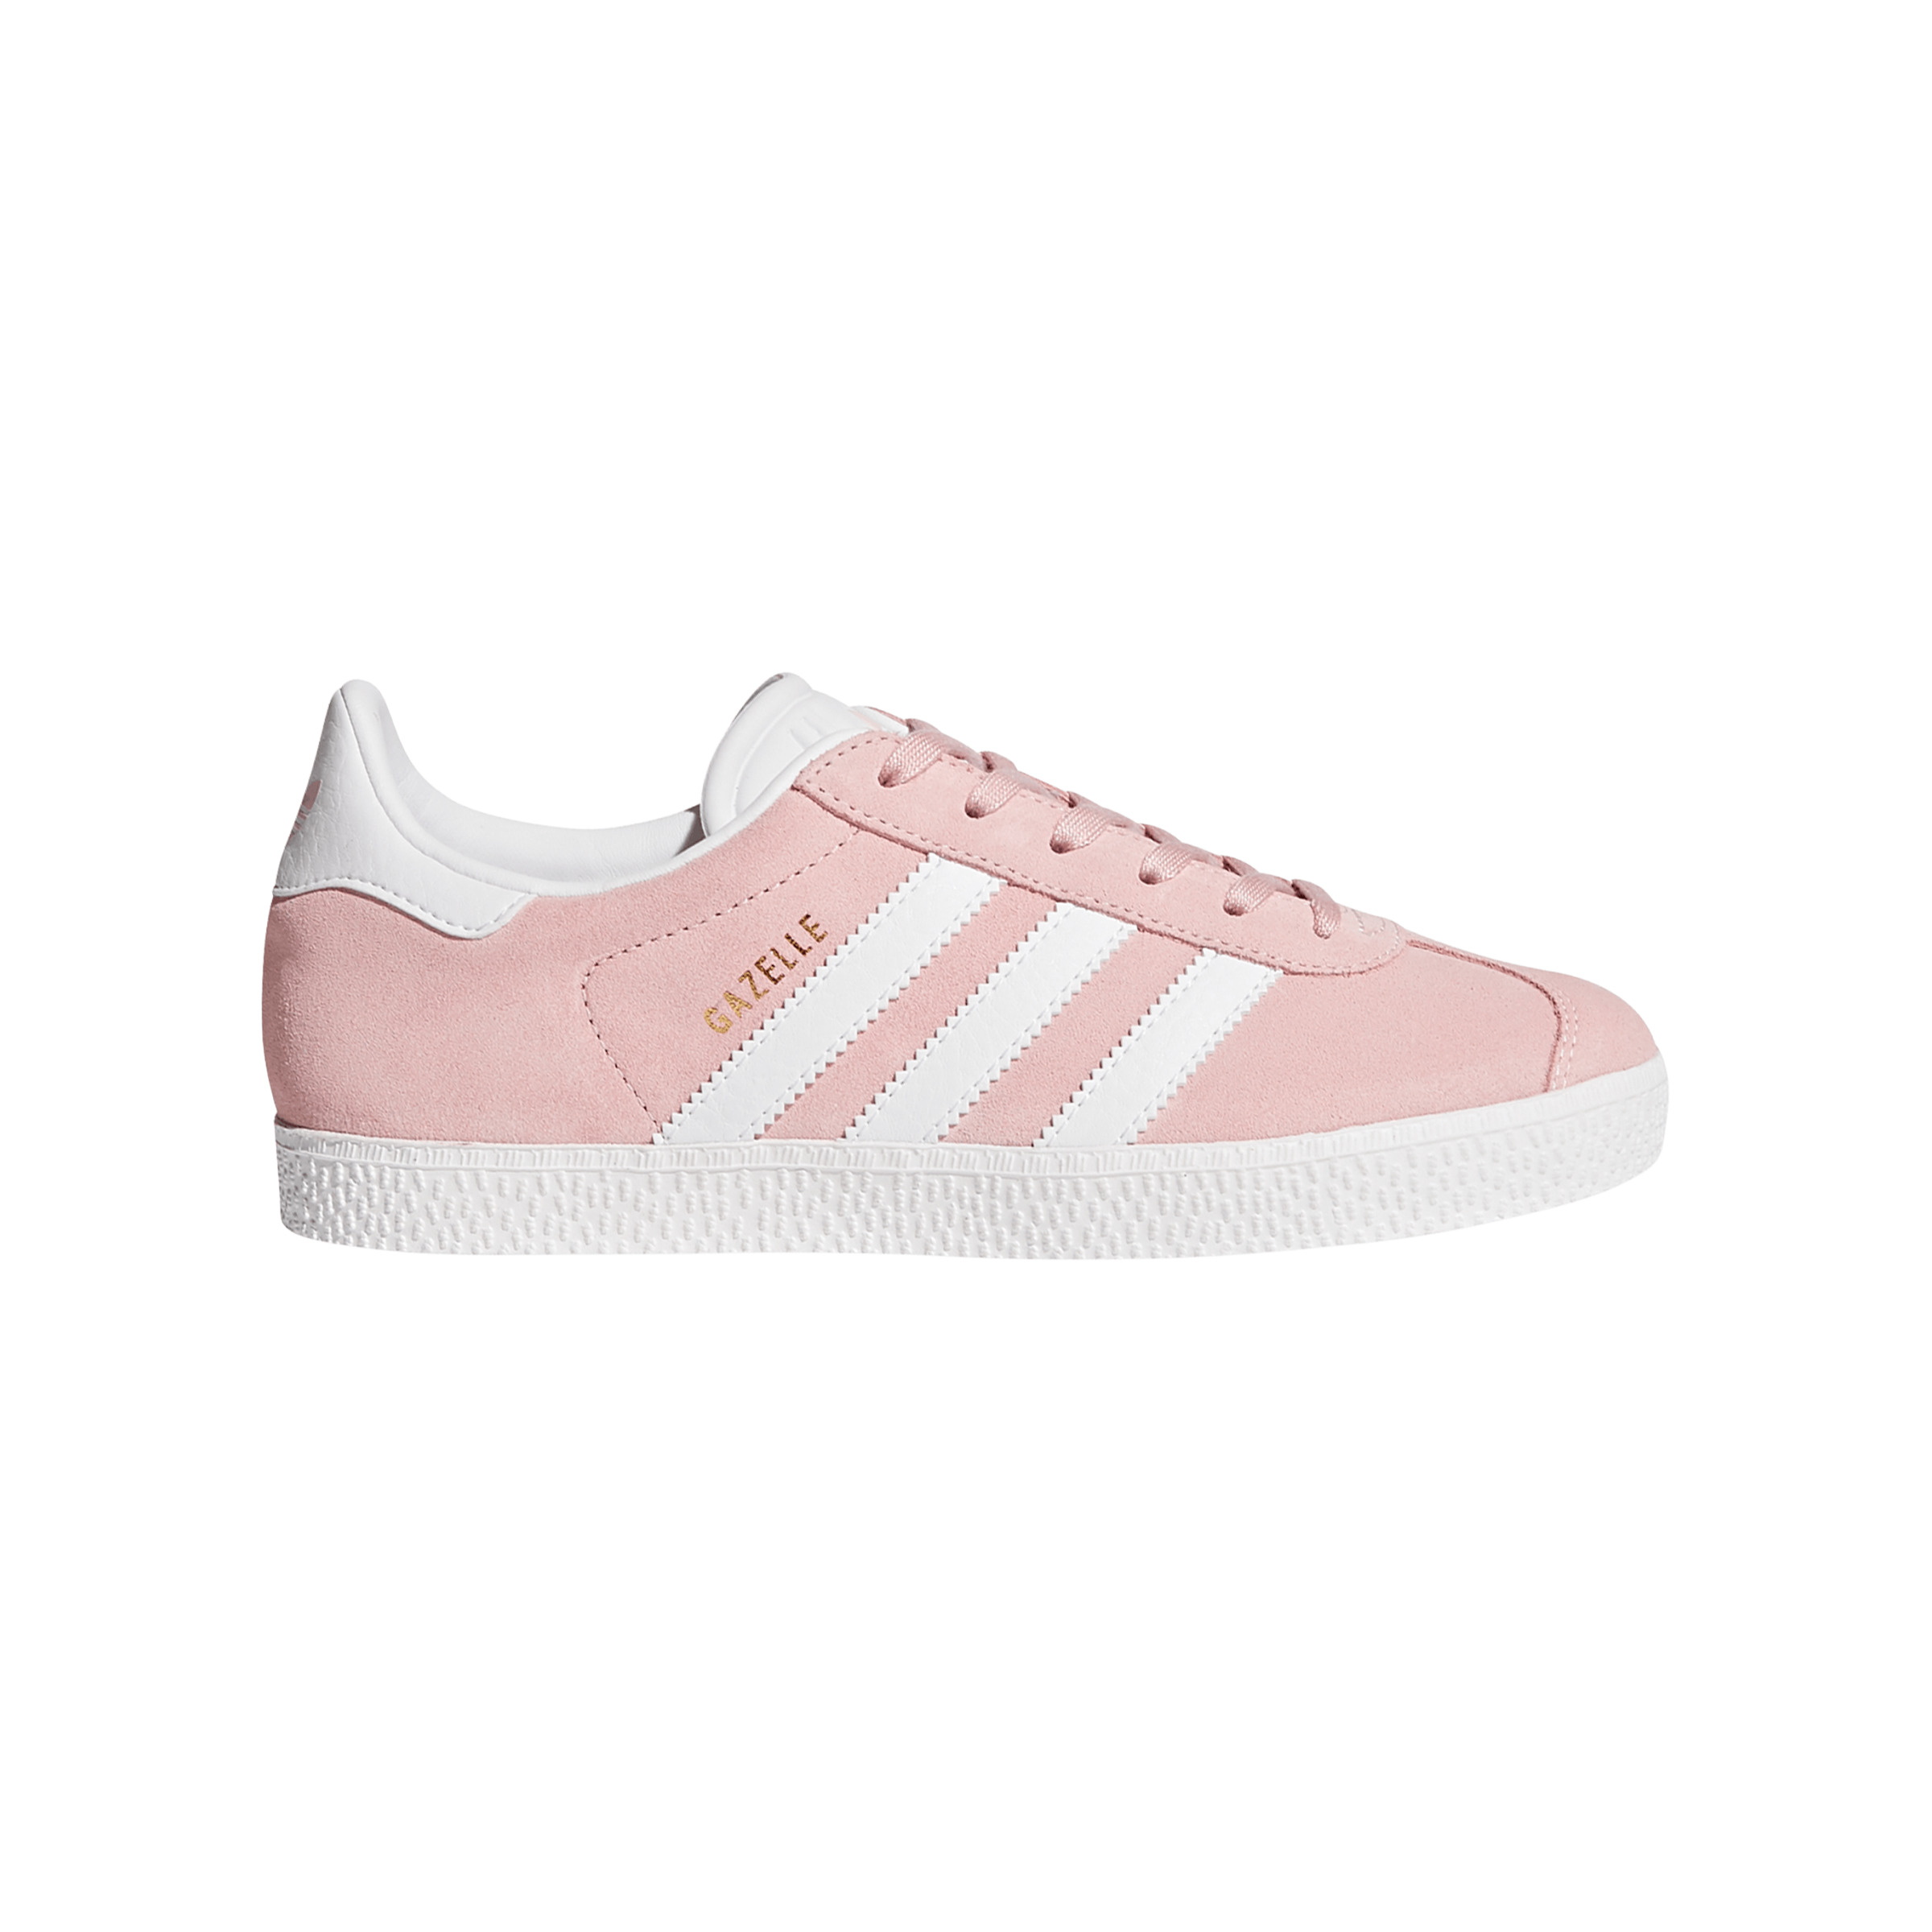 Détails sur Adidas Originals Gazelle J Baskets Enfants Rose